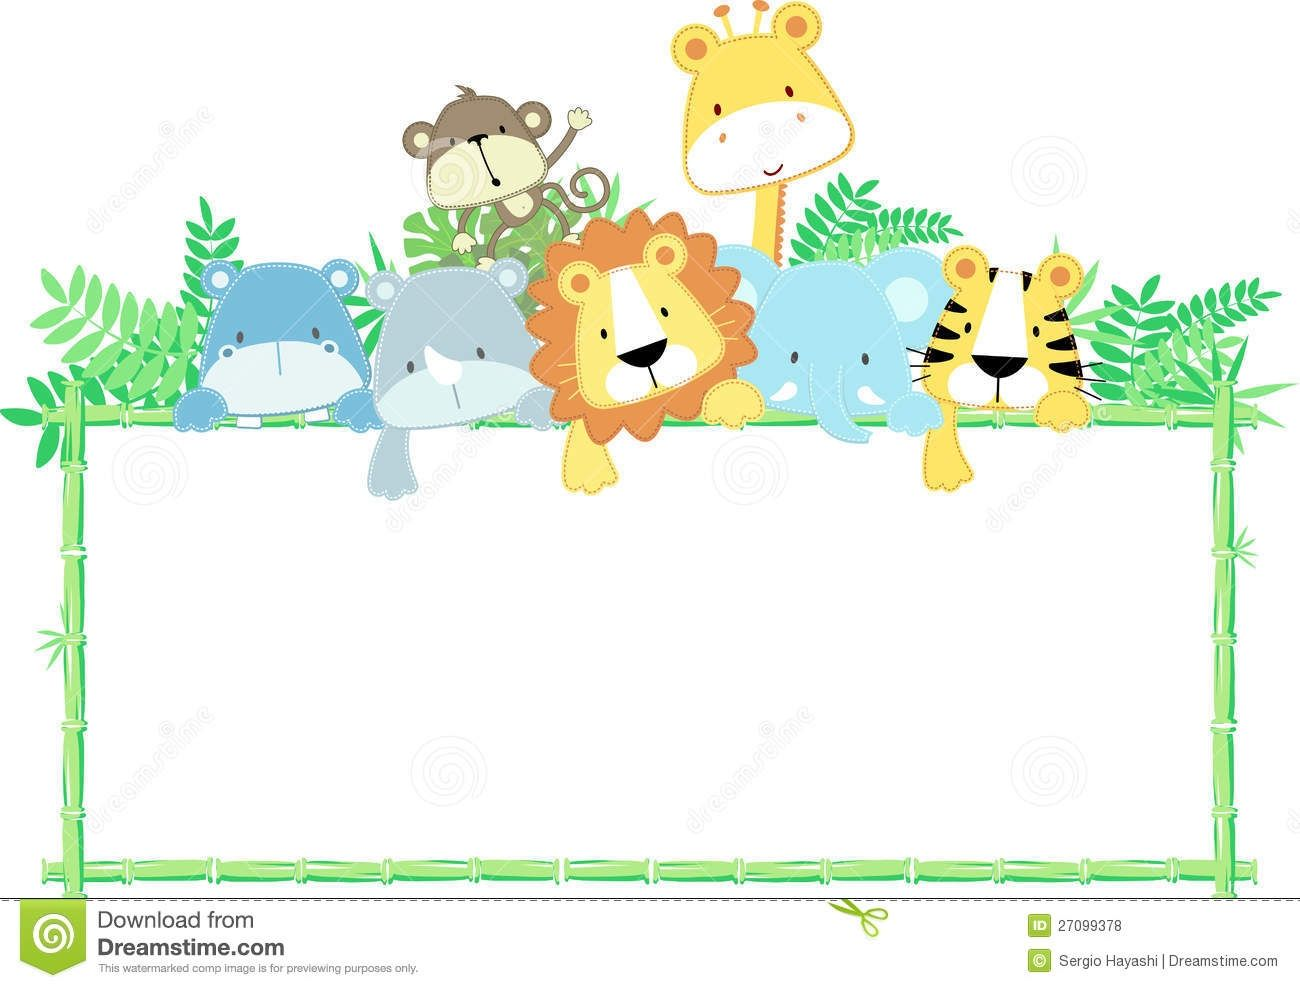 Border clipart animal, Border animal Transparent FREE for.